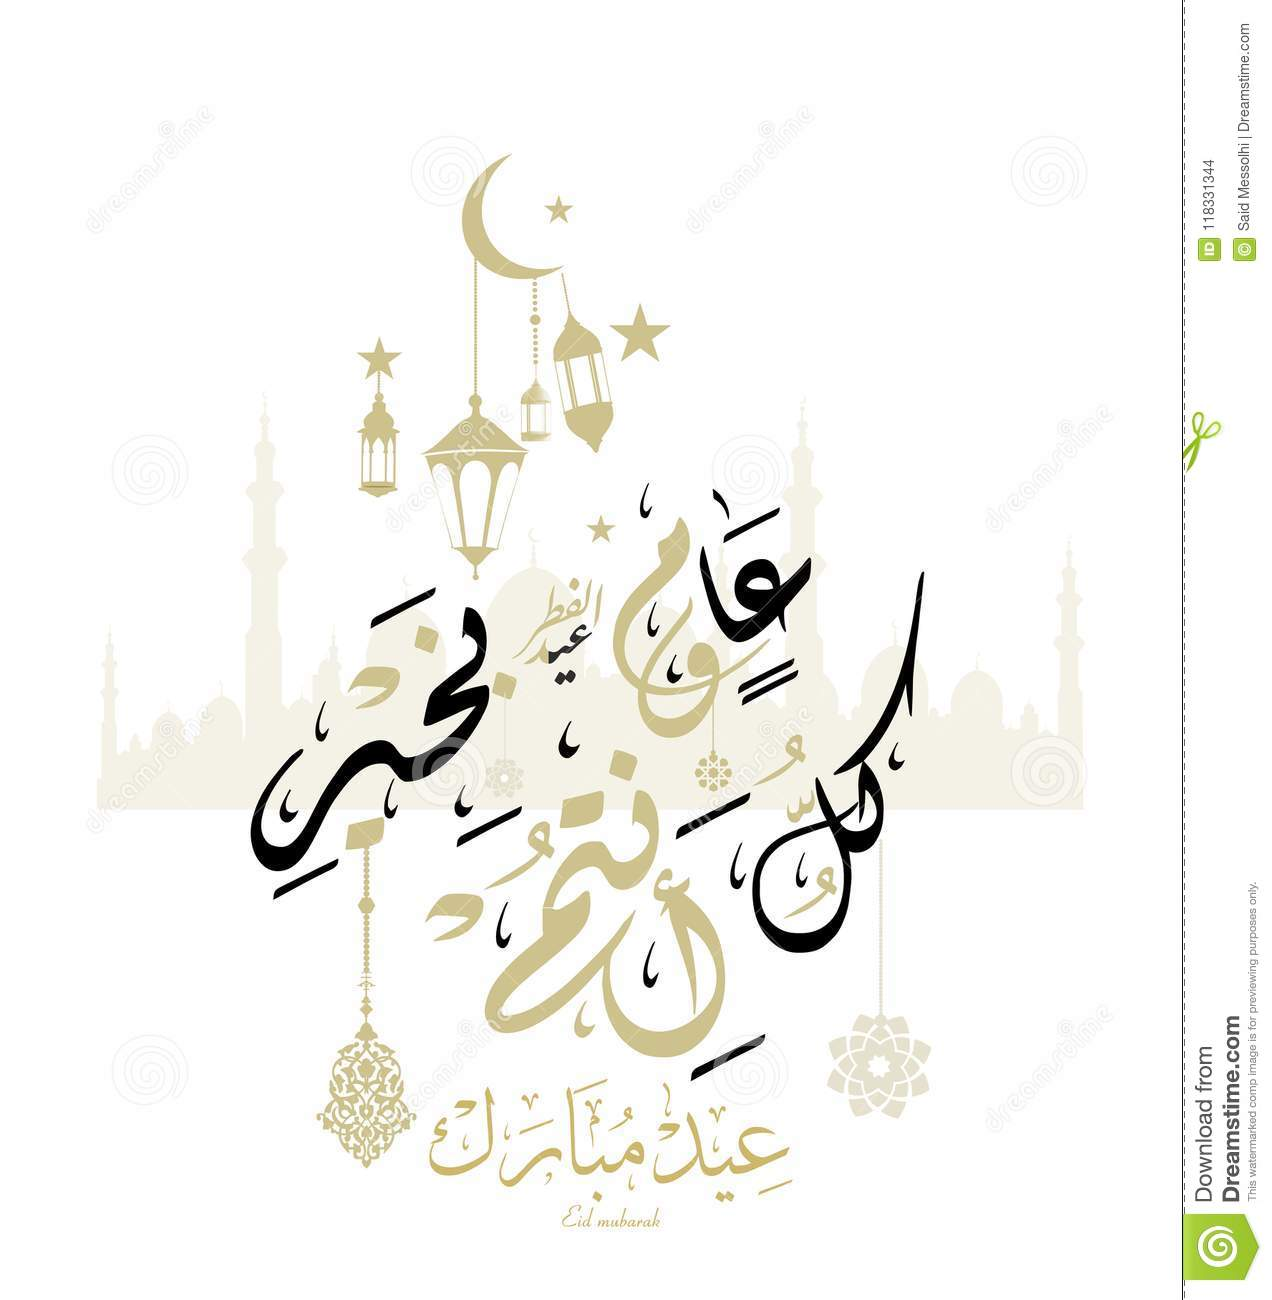 Islamic greeting card on the occasion of eid al fitr for muslims islamic greeting card on the occasion of eid al fitr for muslims can be used as a background with writing in arabic script translated eid mubarak and m4hsunfo